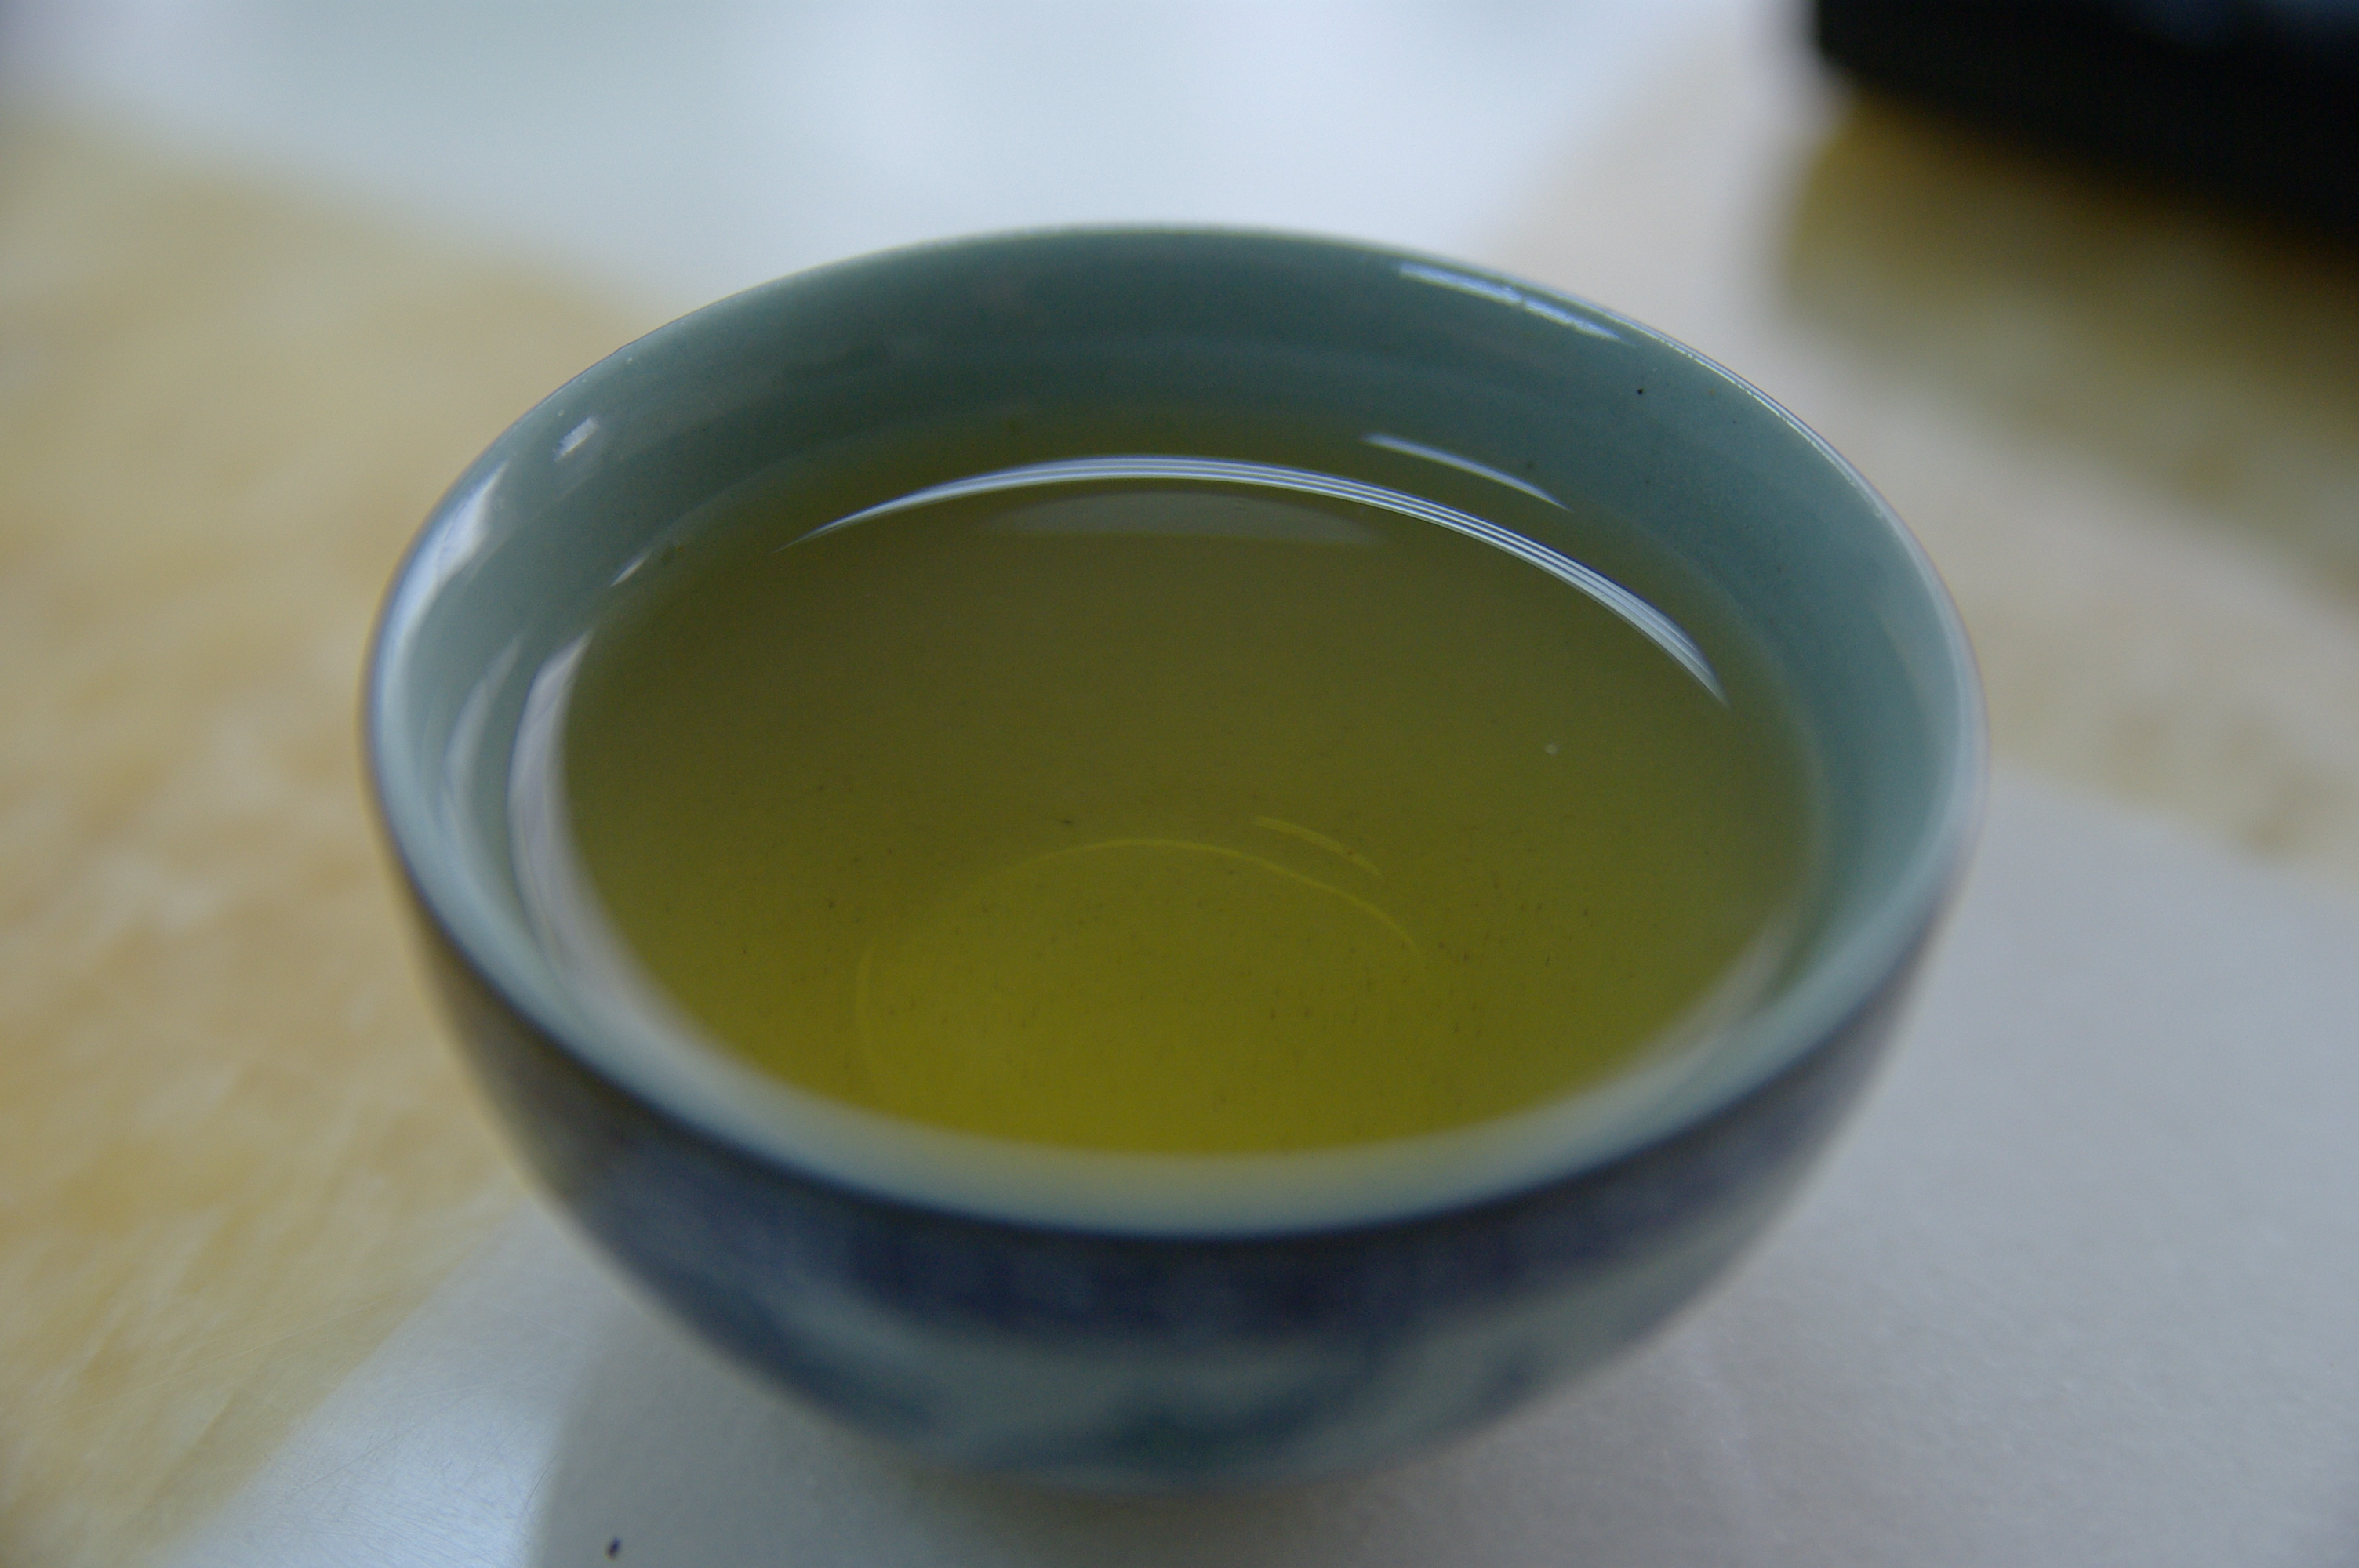 theanine in tea